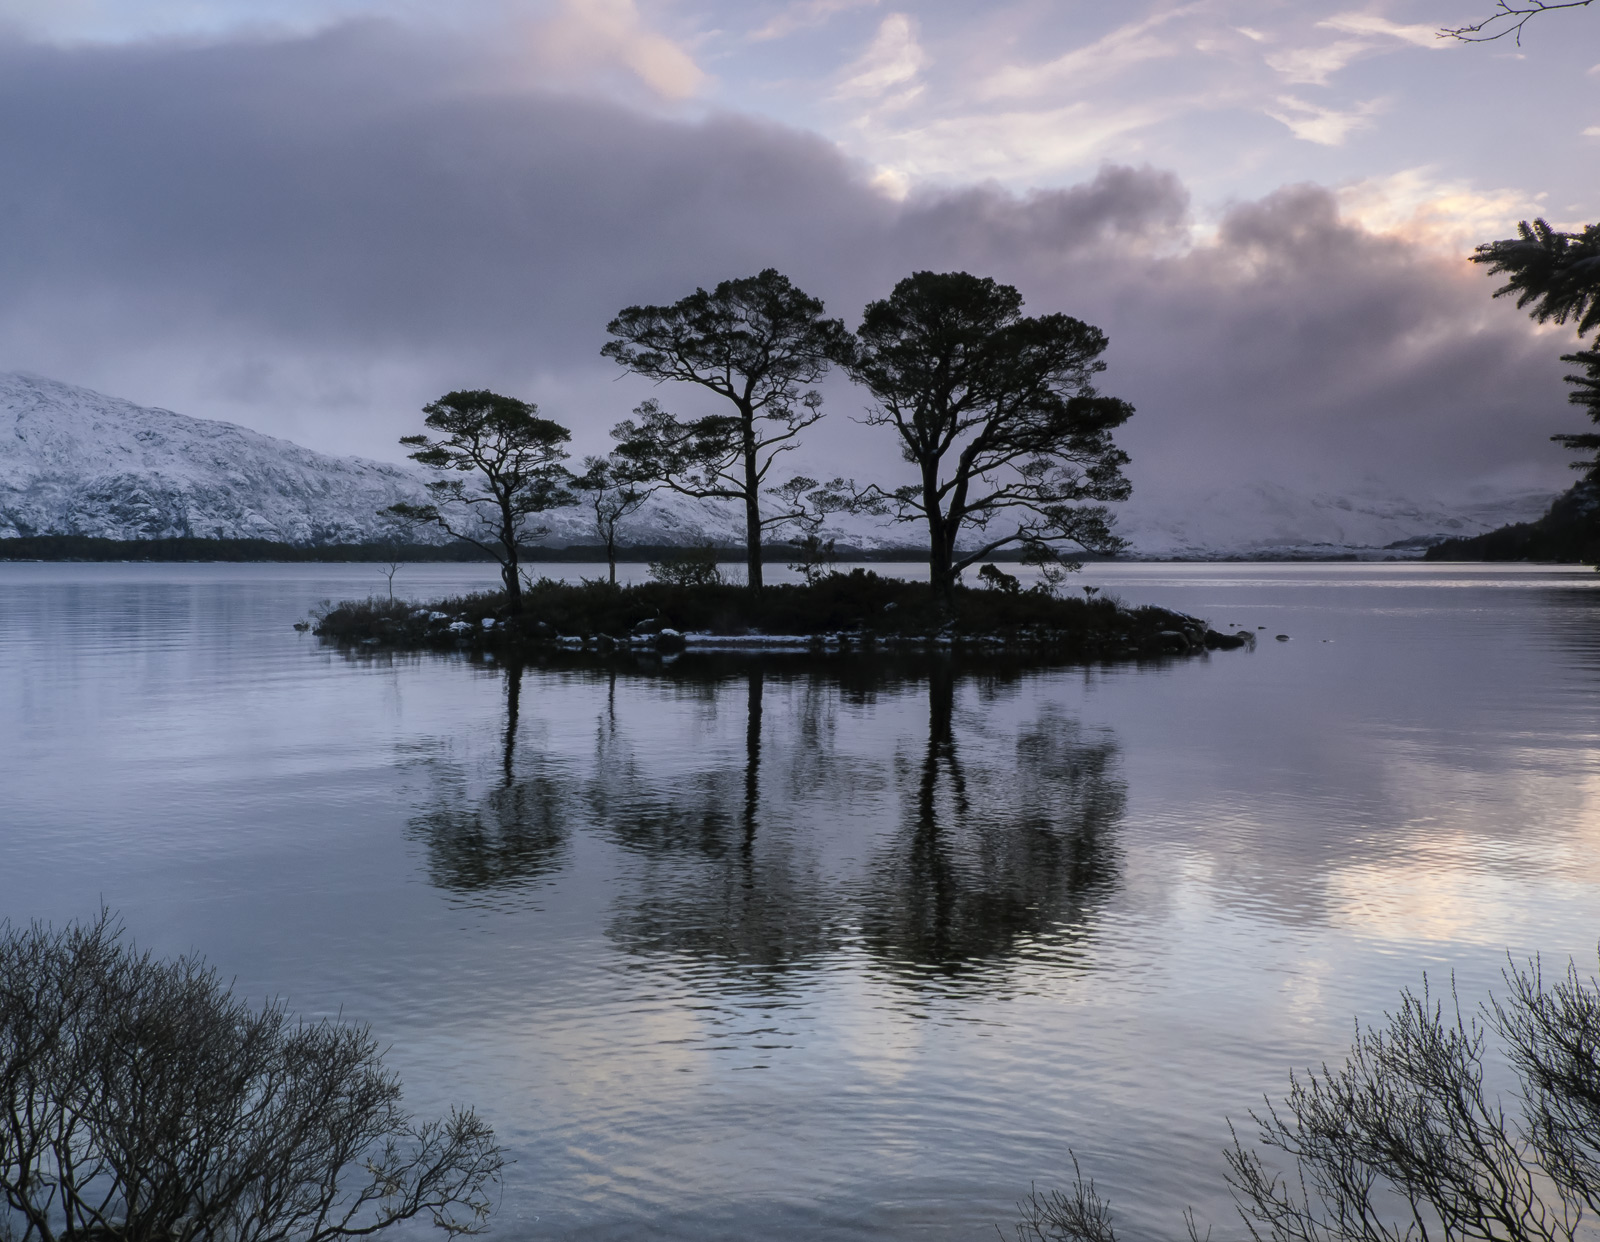 This beautiful little island of Scots Pines is quite difficult to access near Slattadale on the edge of Loch Maree but it is...